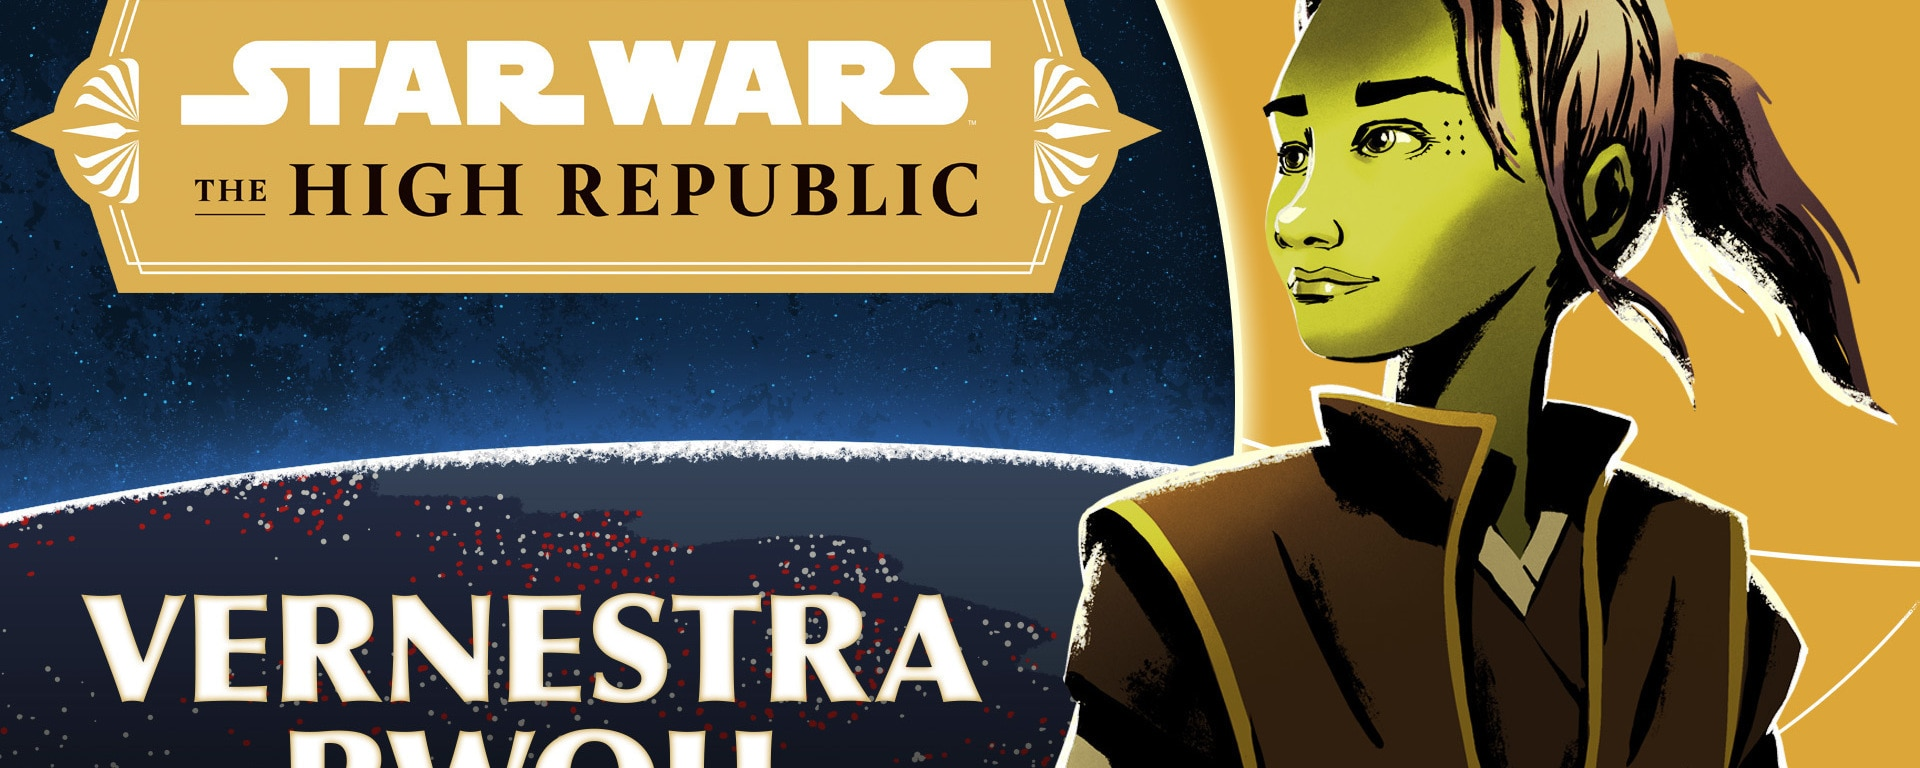 Vernestra Rwoh | Characters of Star Wars: The High Republic